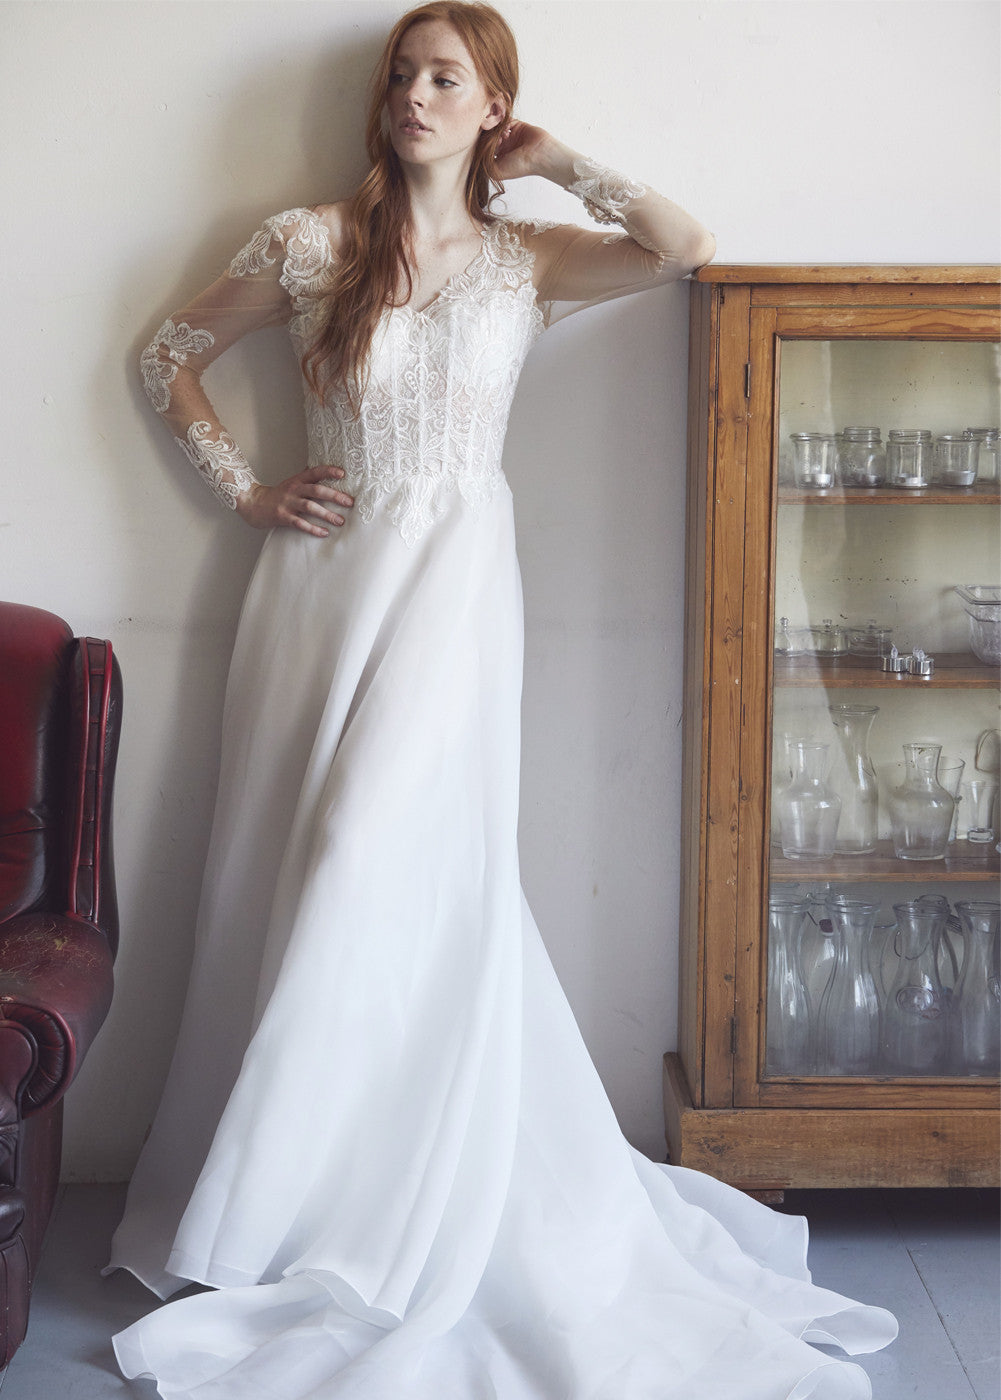 Long Sleeve Sheath Wedding Gown With a See-through Corset – Aneberry